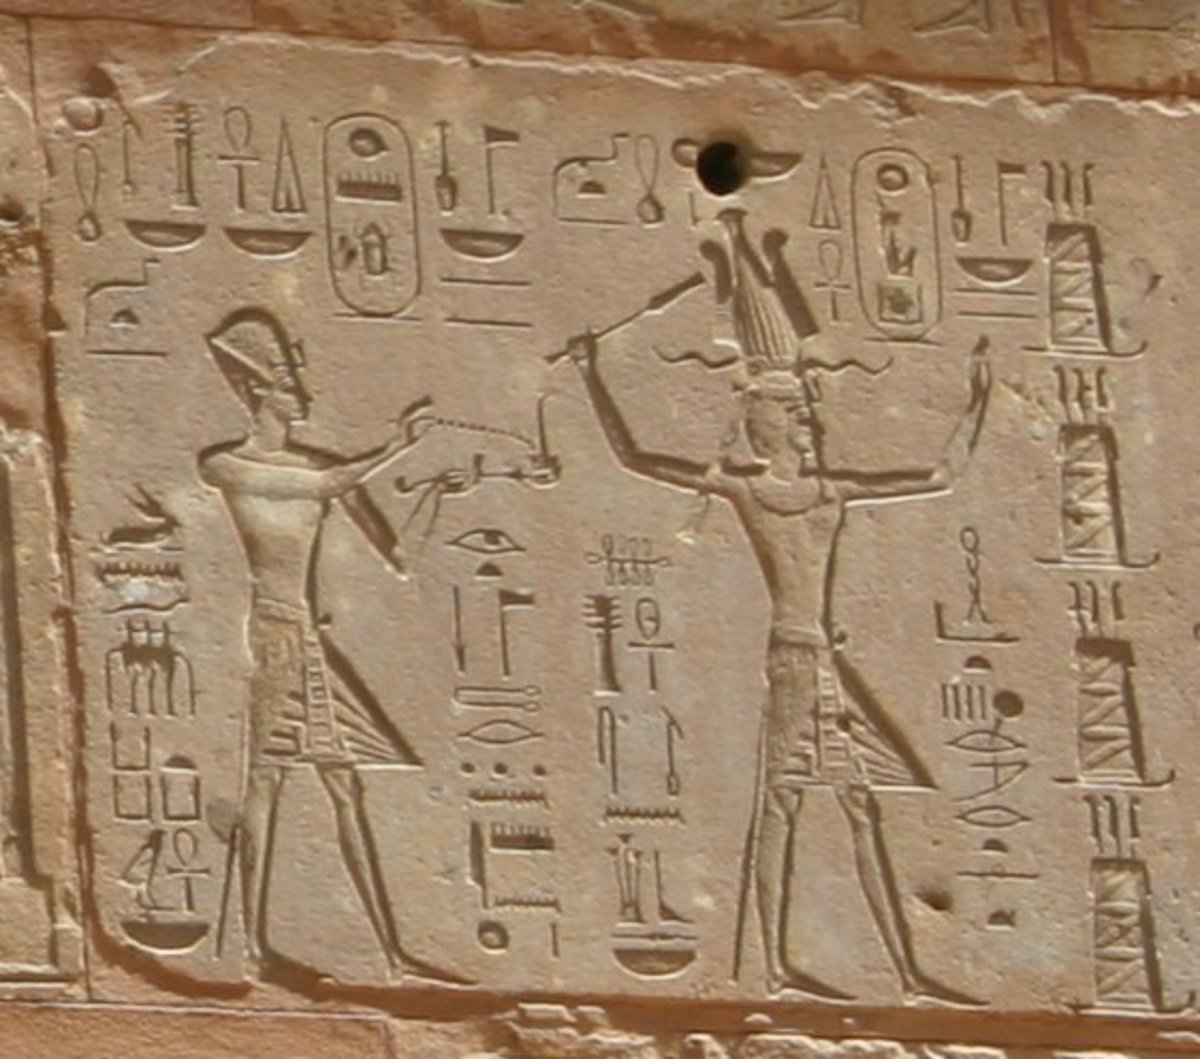 Hieroglyphs showing Thutmose III on the left and Hatshepsut on the right, she having the trappings of the greater role — Red Chapel, Karnak.